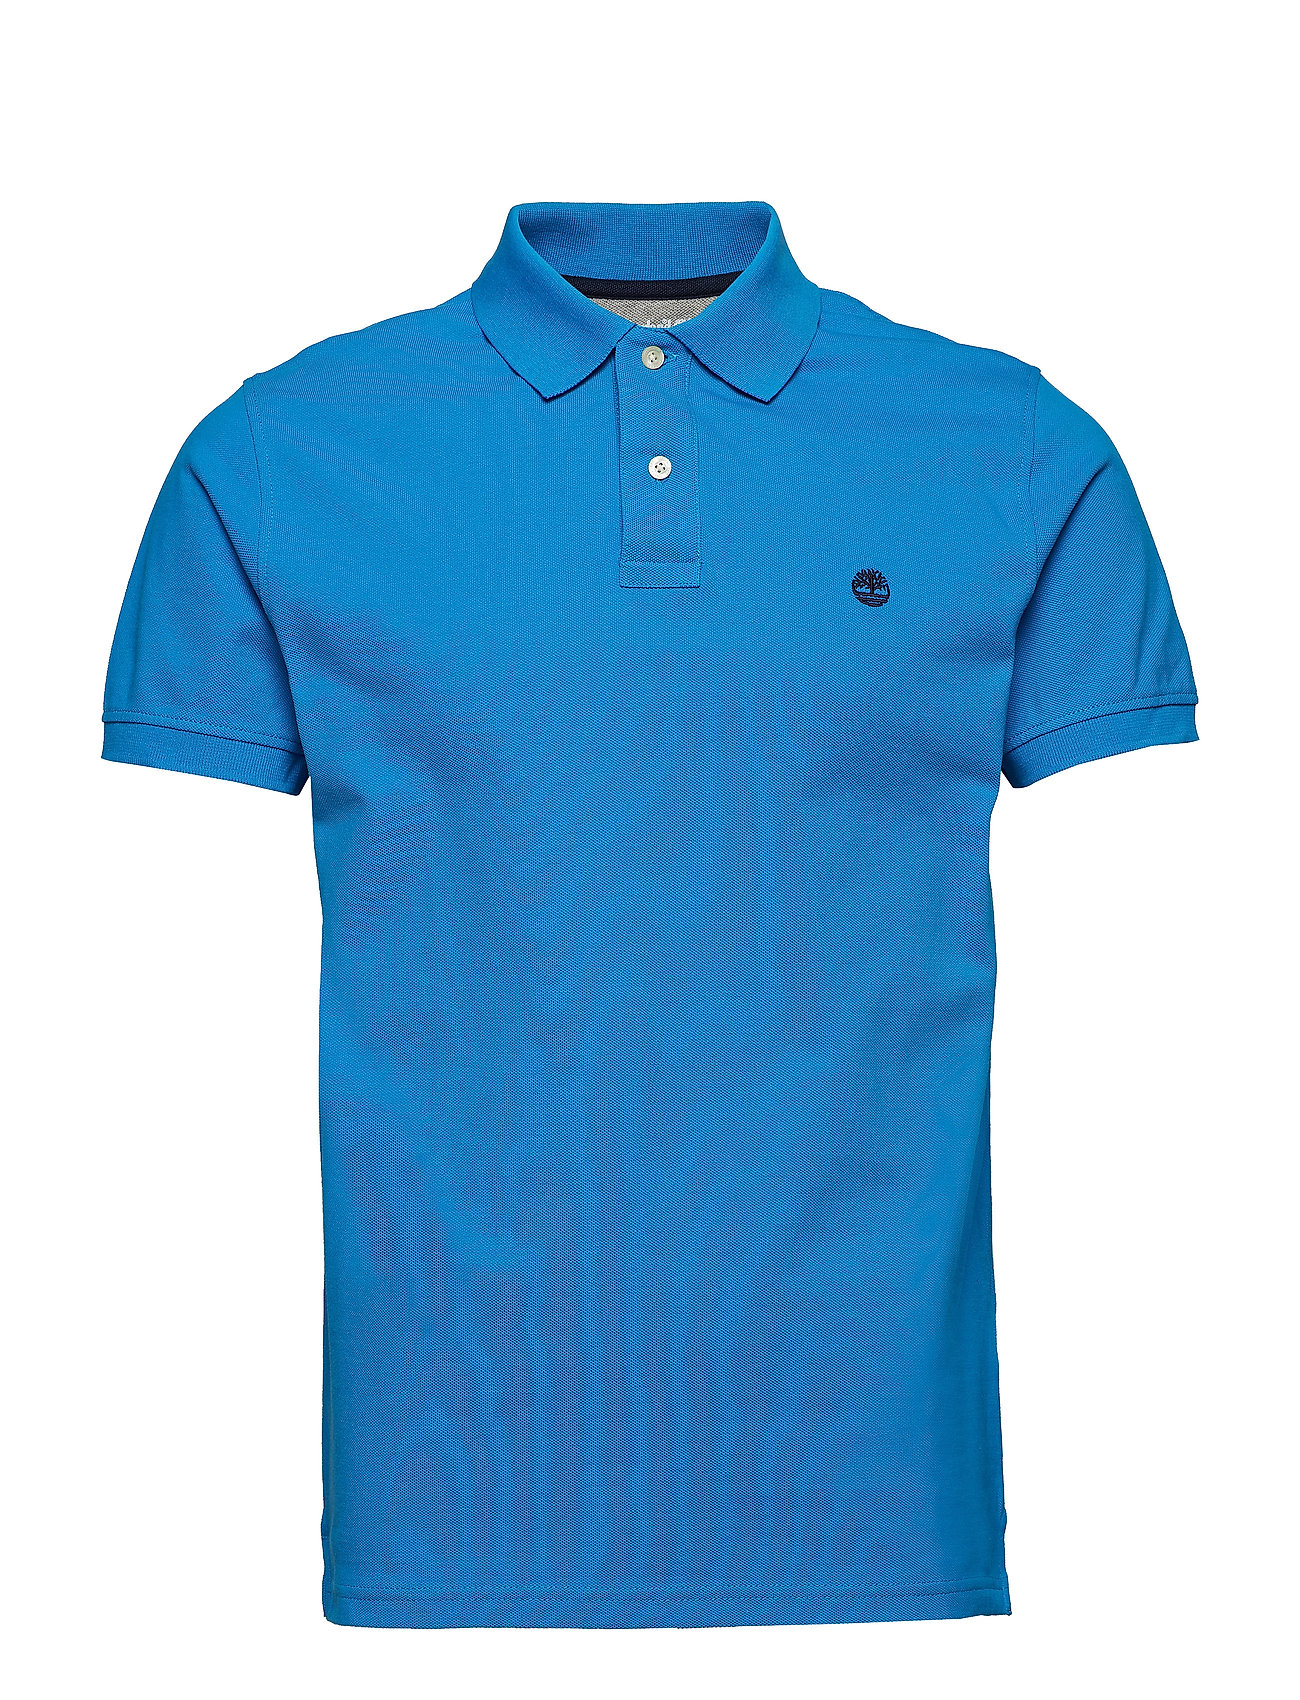 Timberland SS Millers River Pique Slim Polo - INDIGO BUNTING